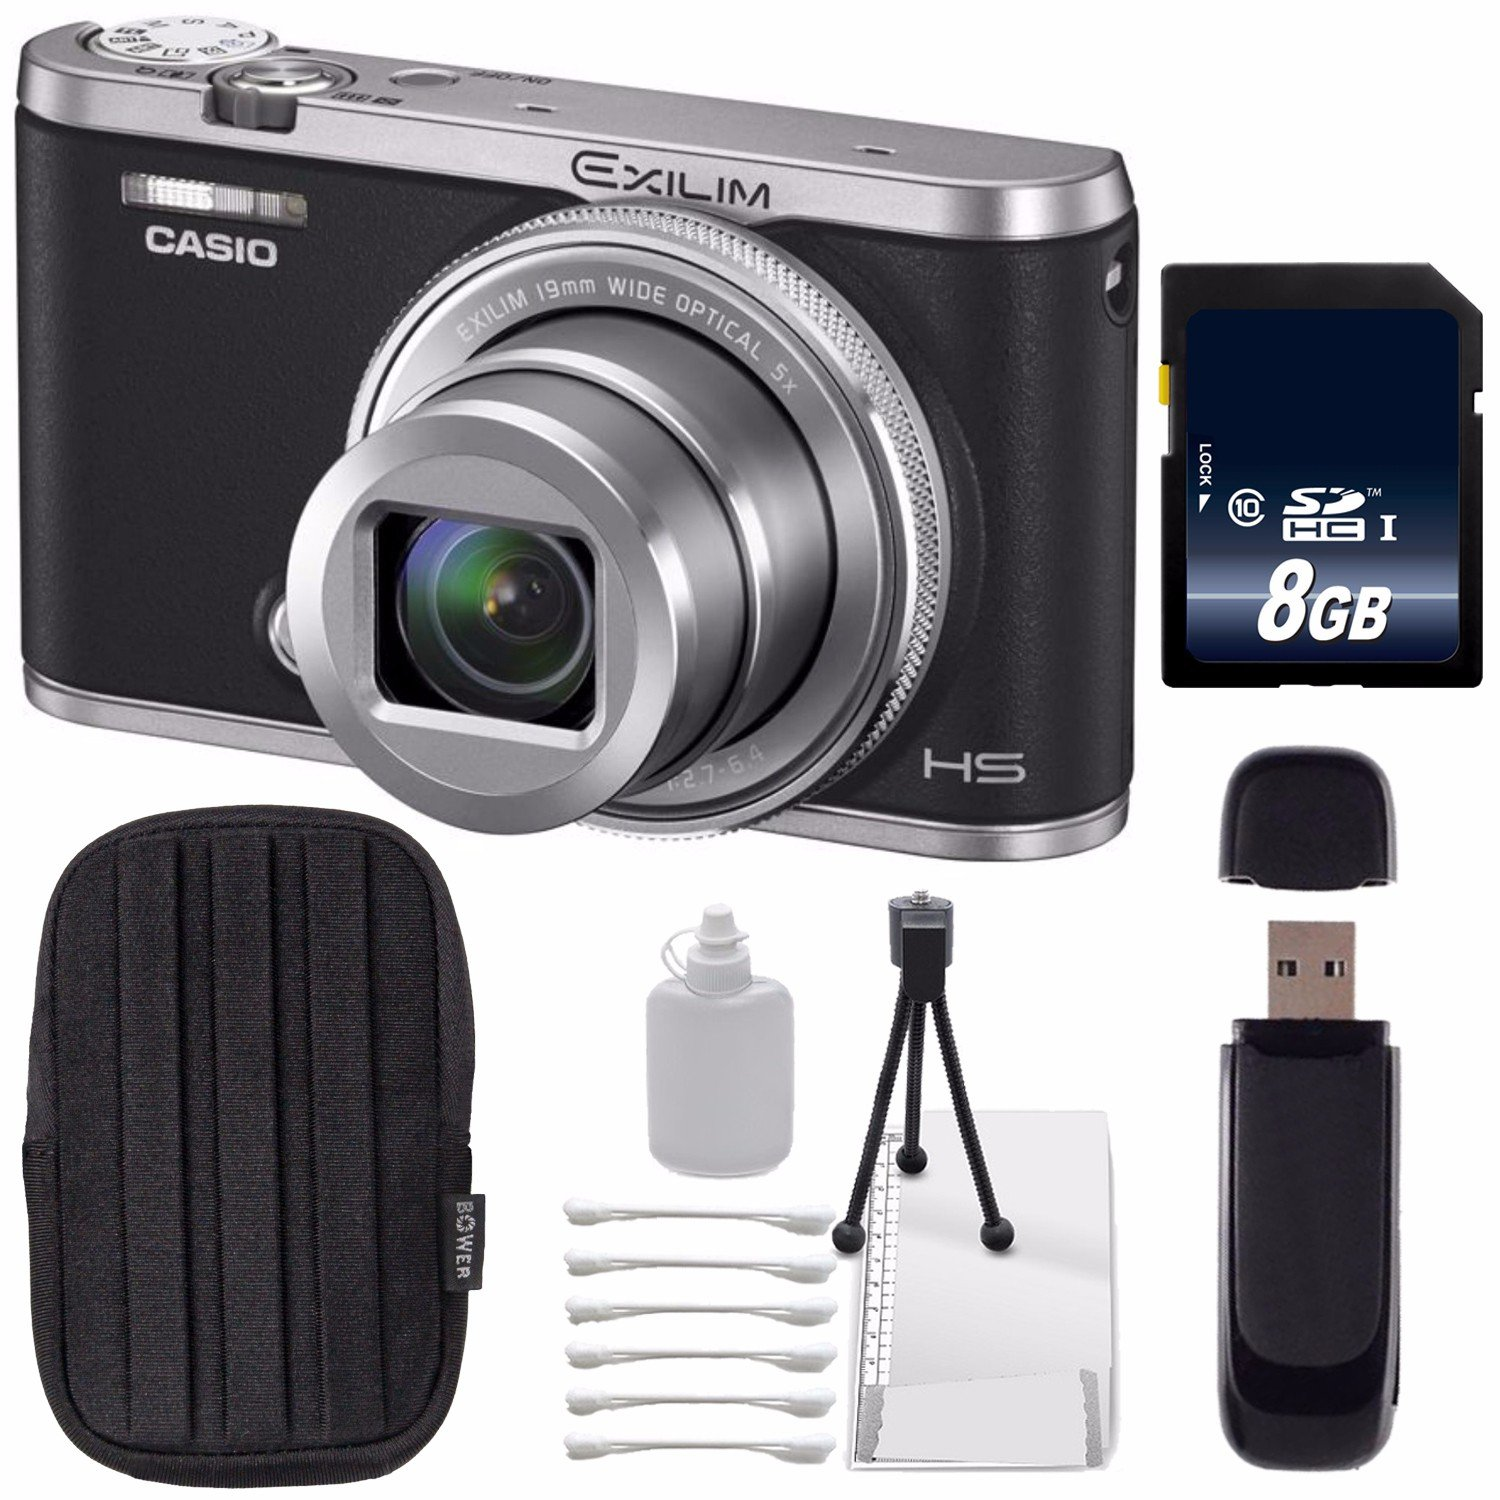 Casio EXILIM EX-ZR5000 12.1MP Digital Camera (Black) + 8GB SDHC Class 10 Memory Card + SD Card USB Reader + Small Case + Deluxe Starter Kit Bundle